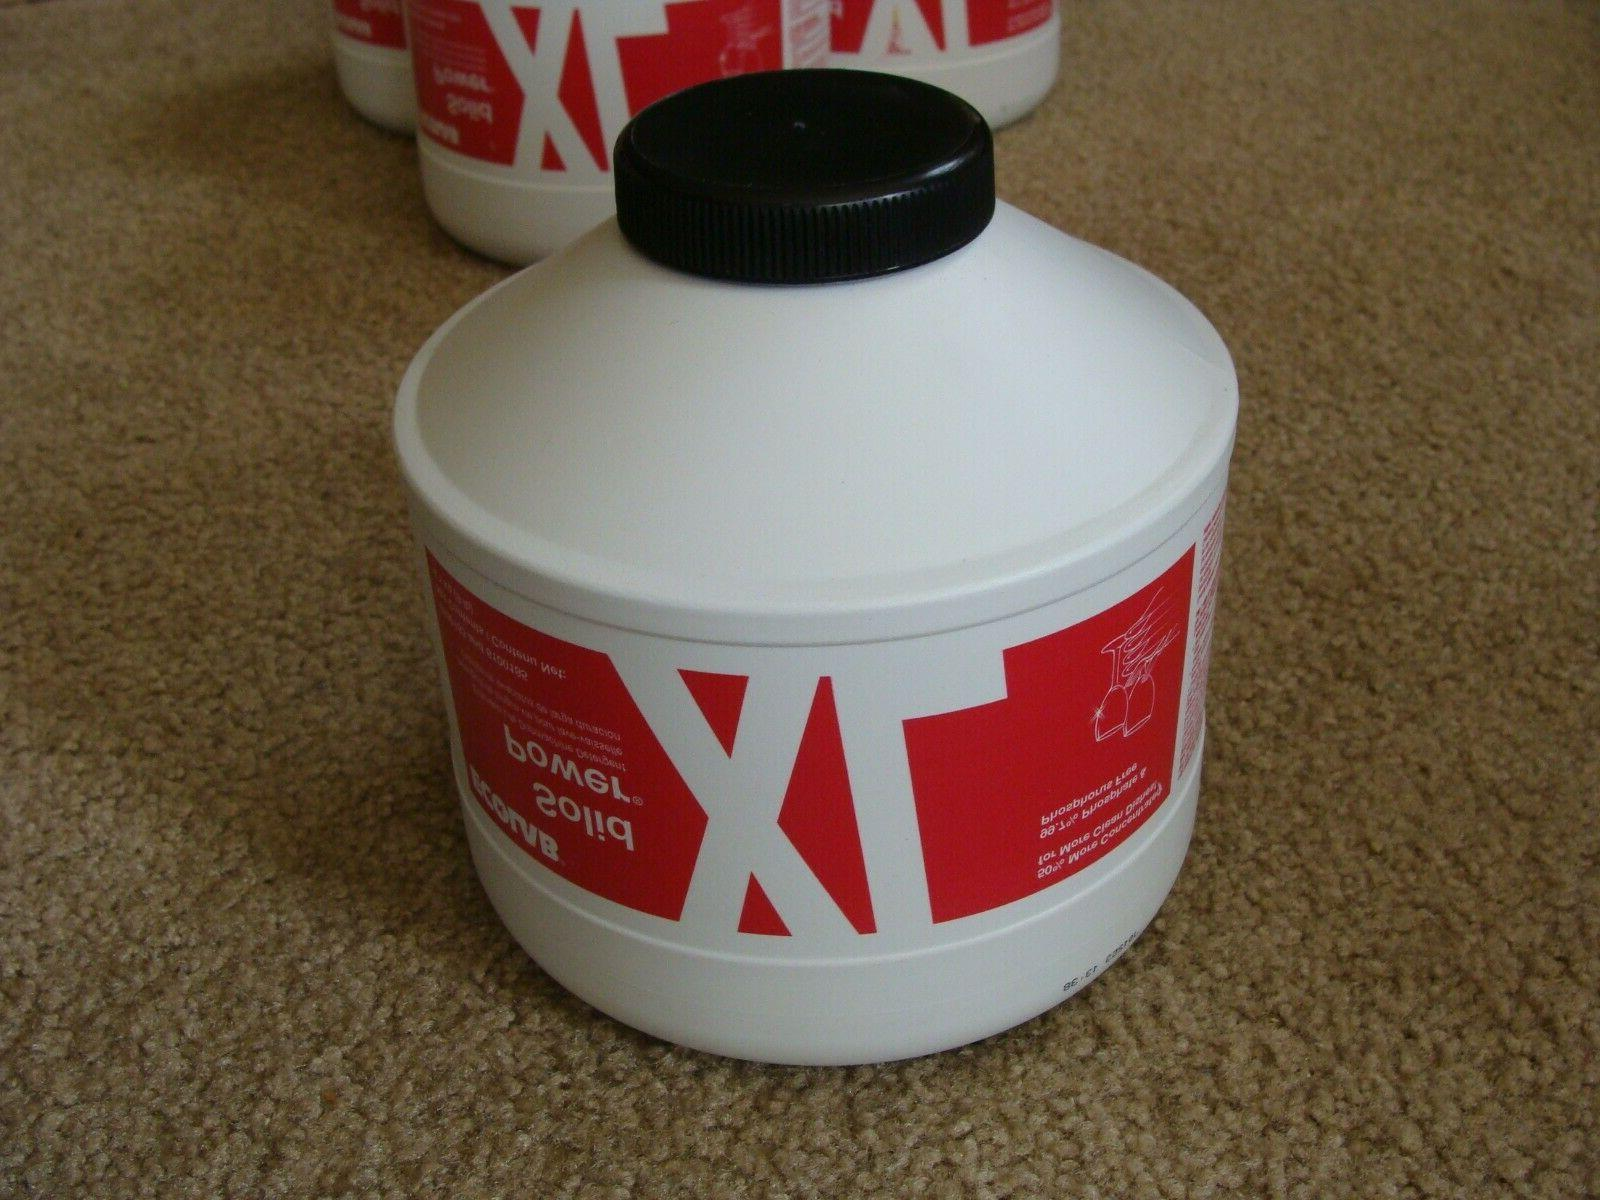 ONE Solid Power XL Detergent Canister